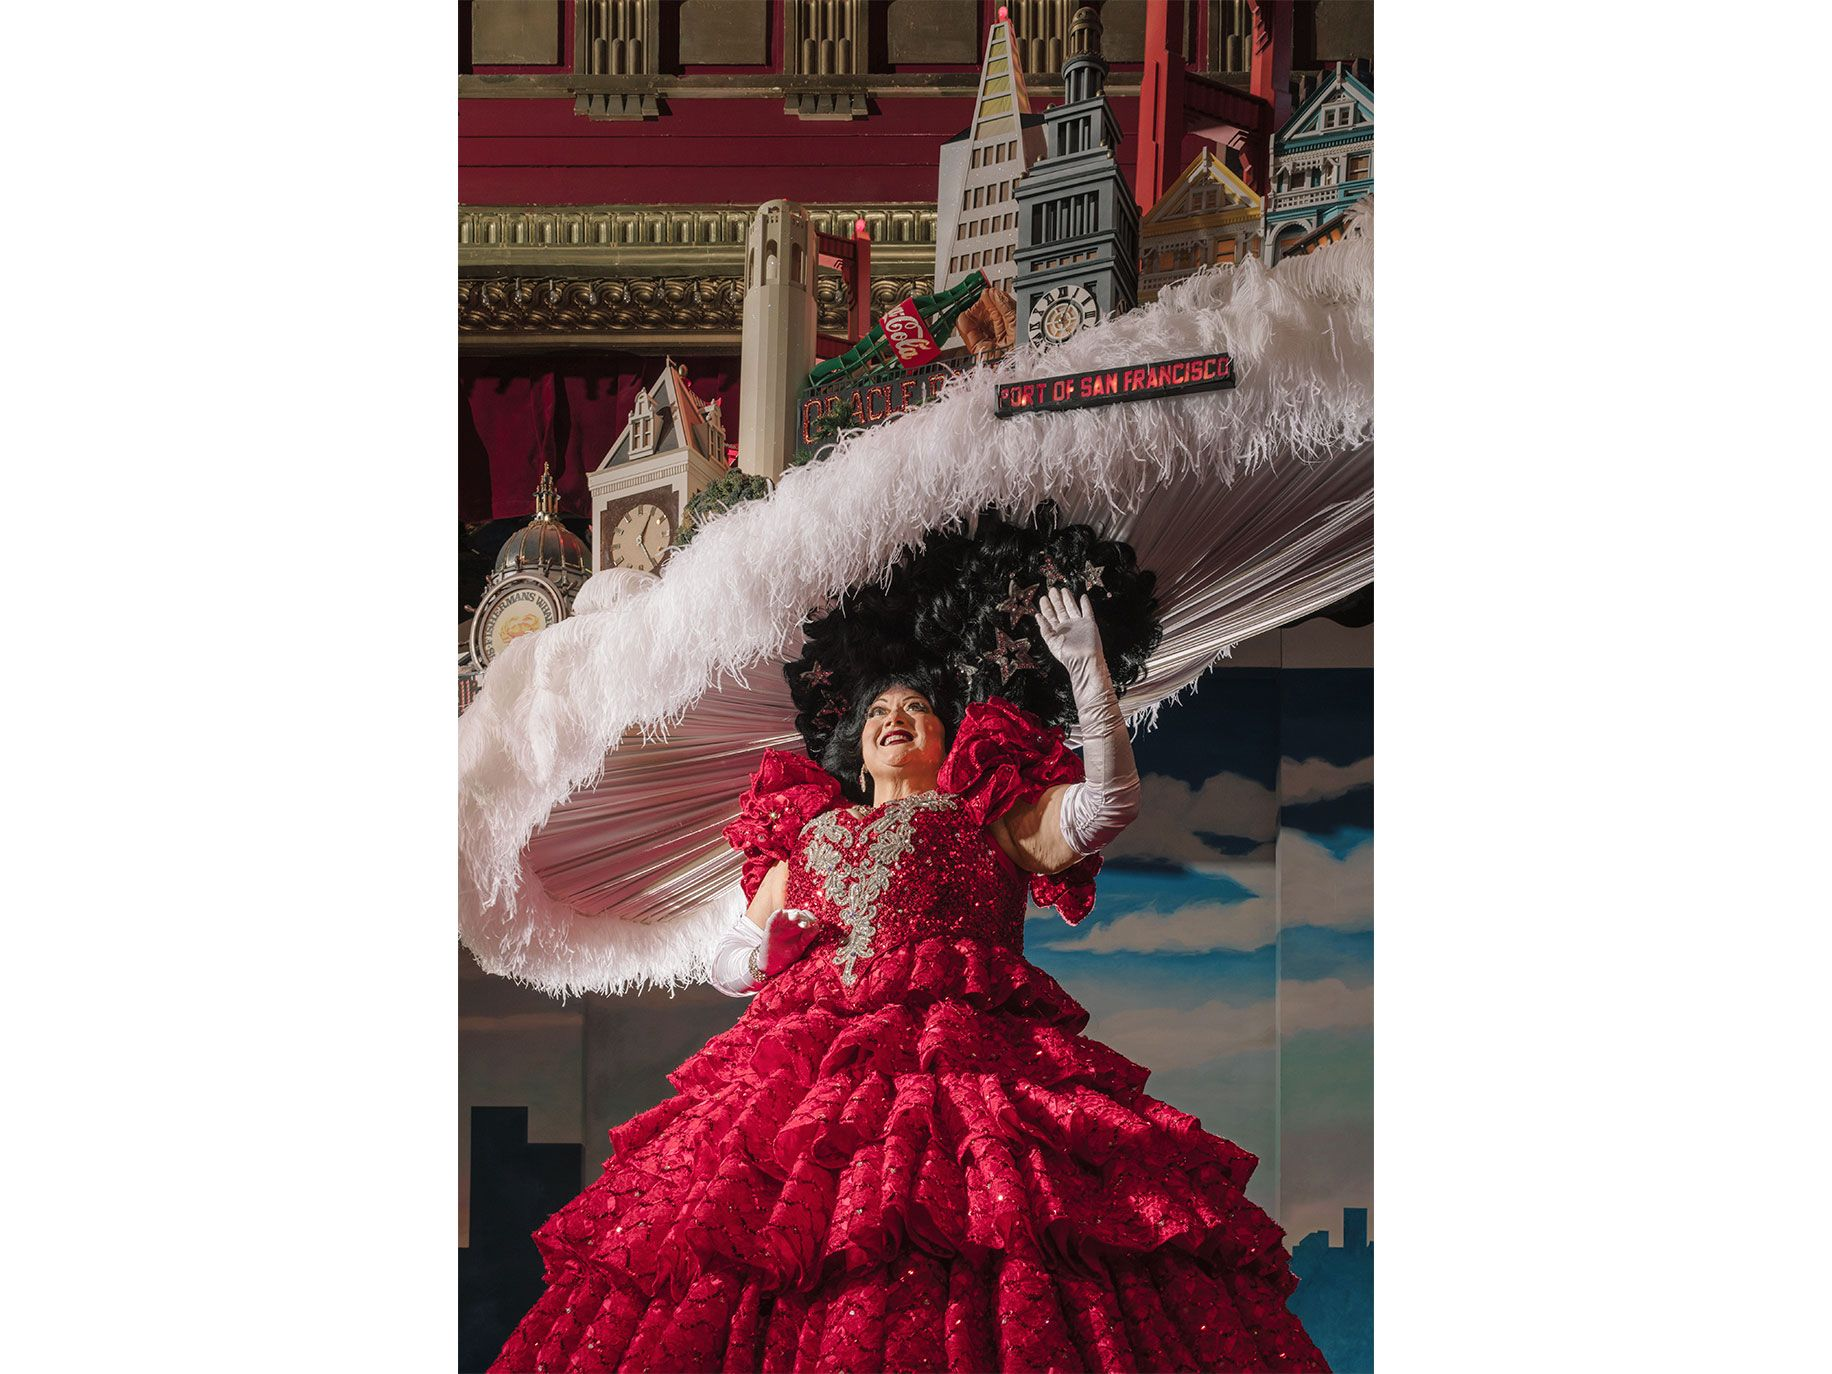 Tammy Nelson performs the finale of Beach Blanket Babylon wearing a San Francisco skyline hat, which includes a cable car and the Transamerica Pyramid.